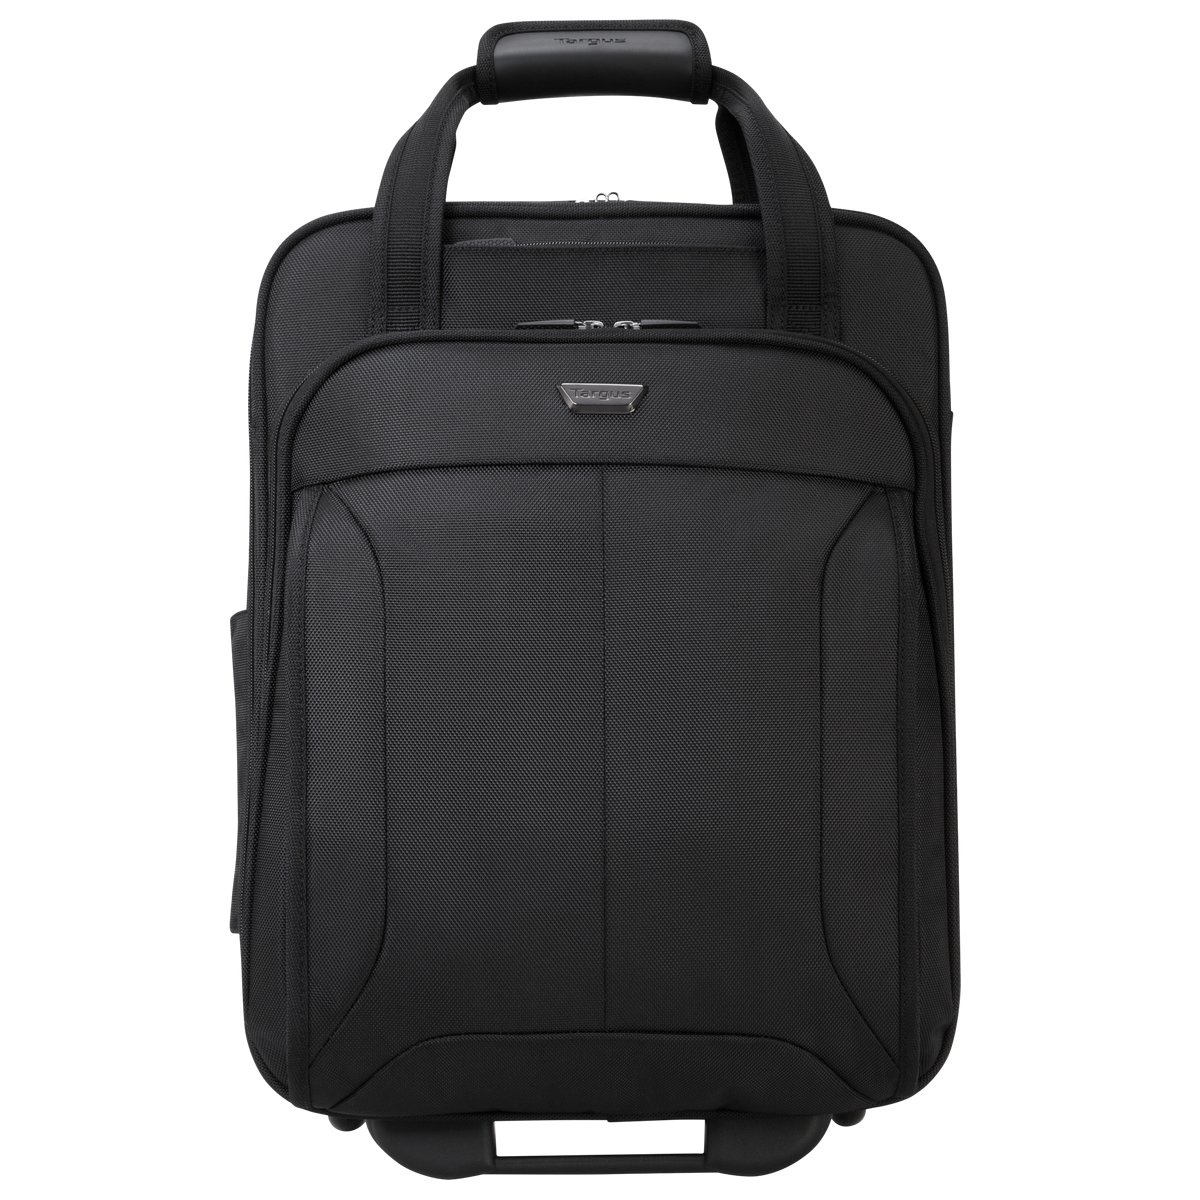 Targus Corporate Traveler Vertical Rolling Case with SafePoirt Air Cushion System for 15.6-Inch Laptops, Black (CUCT03R)